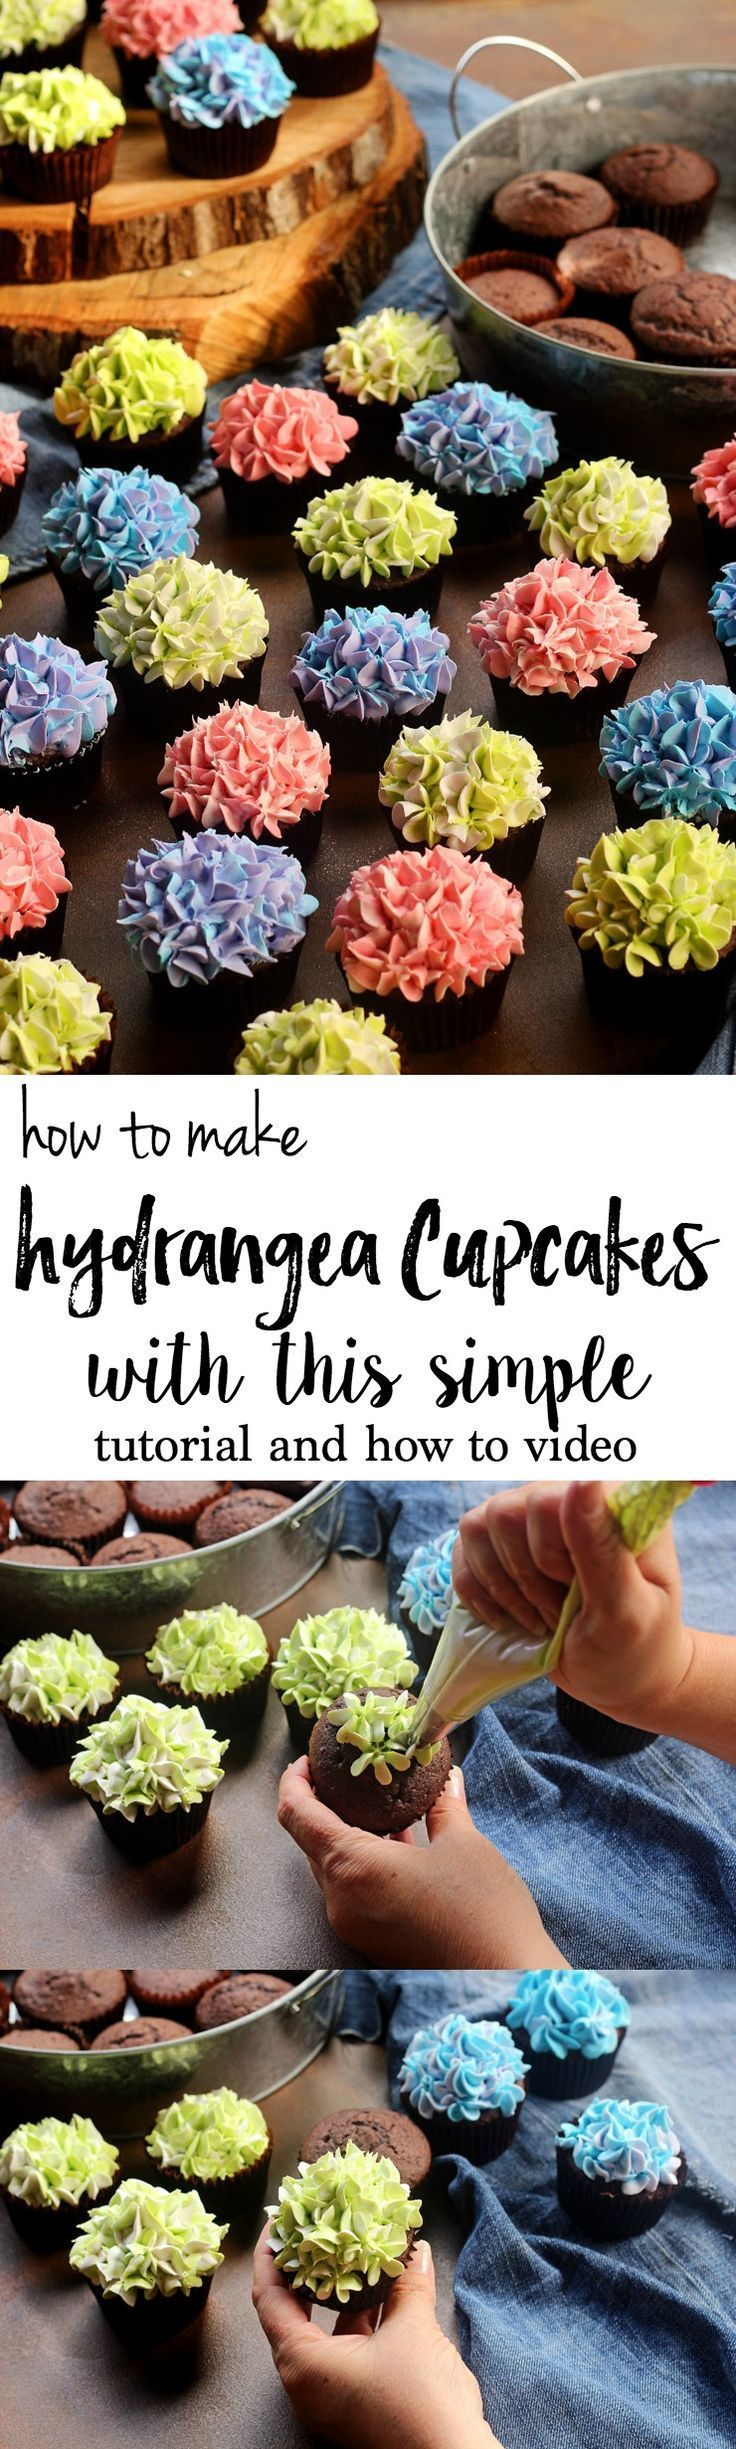 How to Make Hydrangea Cupcakes with this Simple Tutorial and and How to Video   The Bearfoot Baker